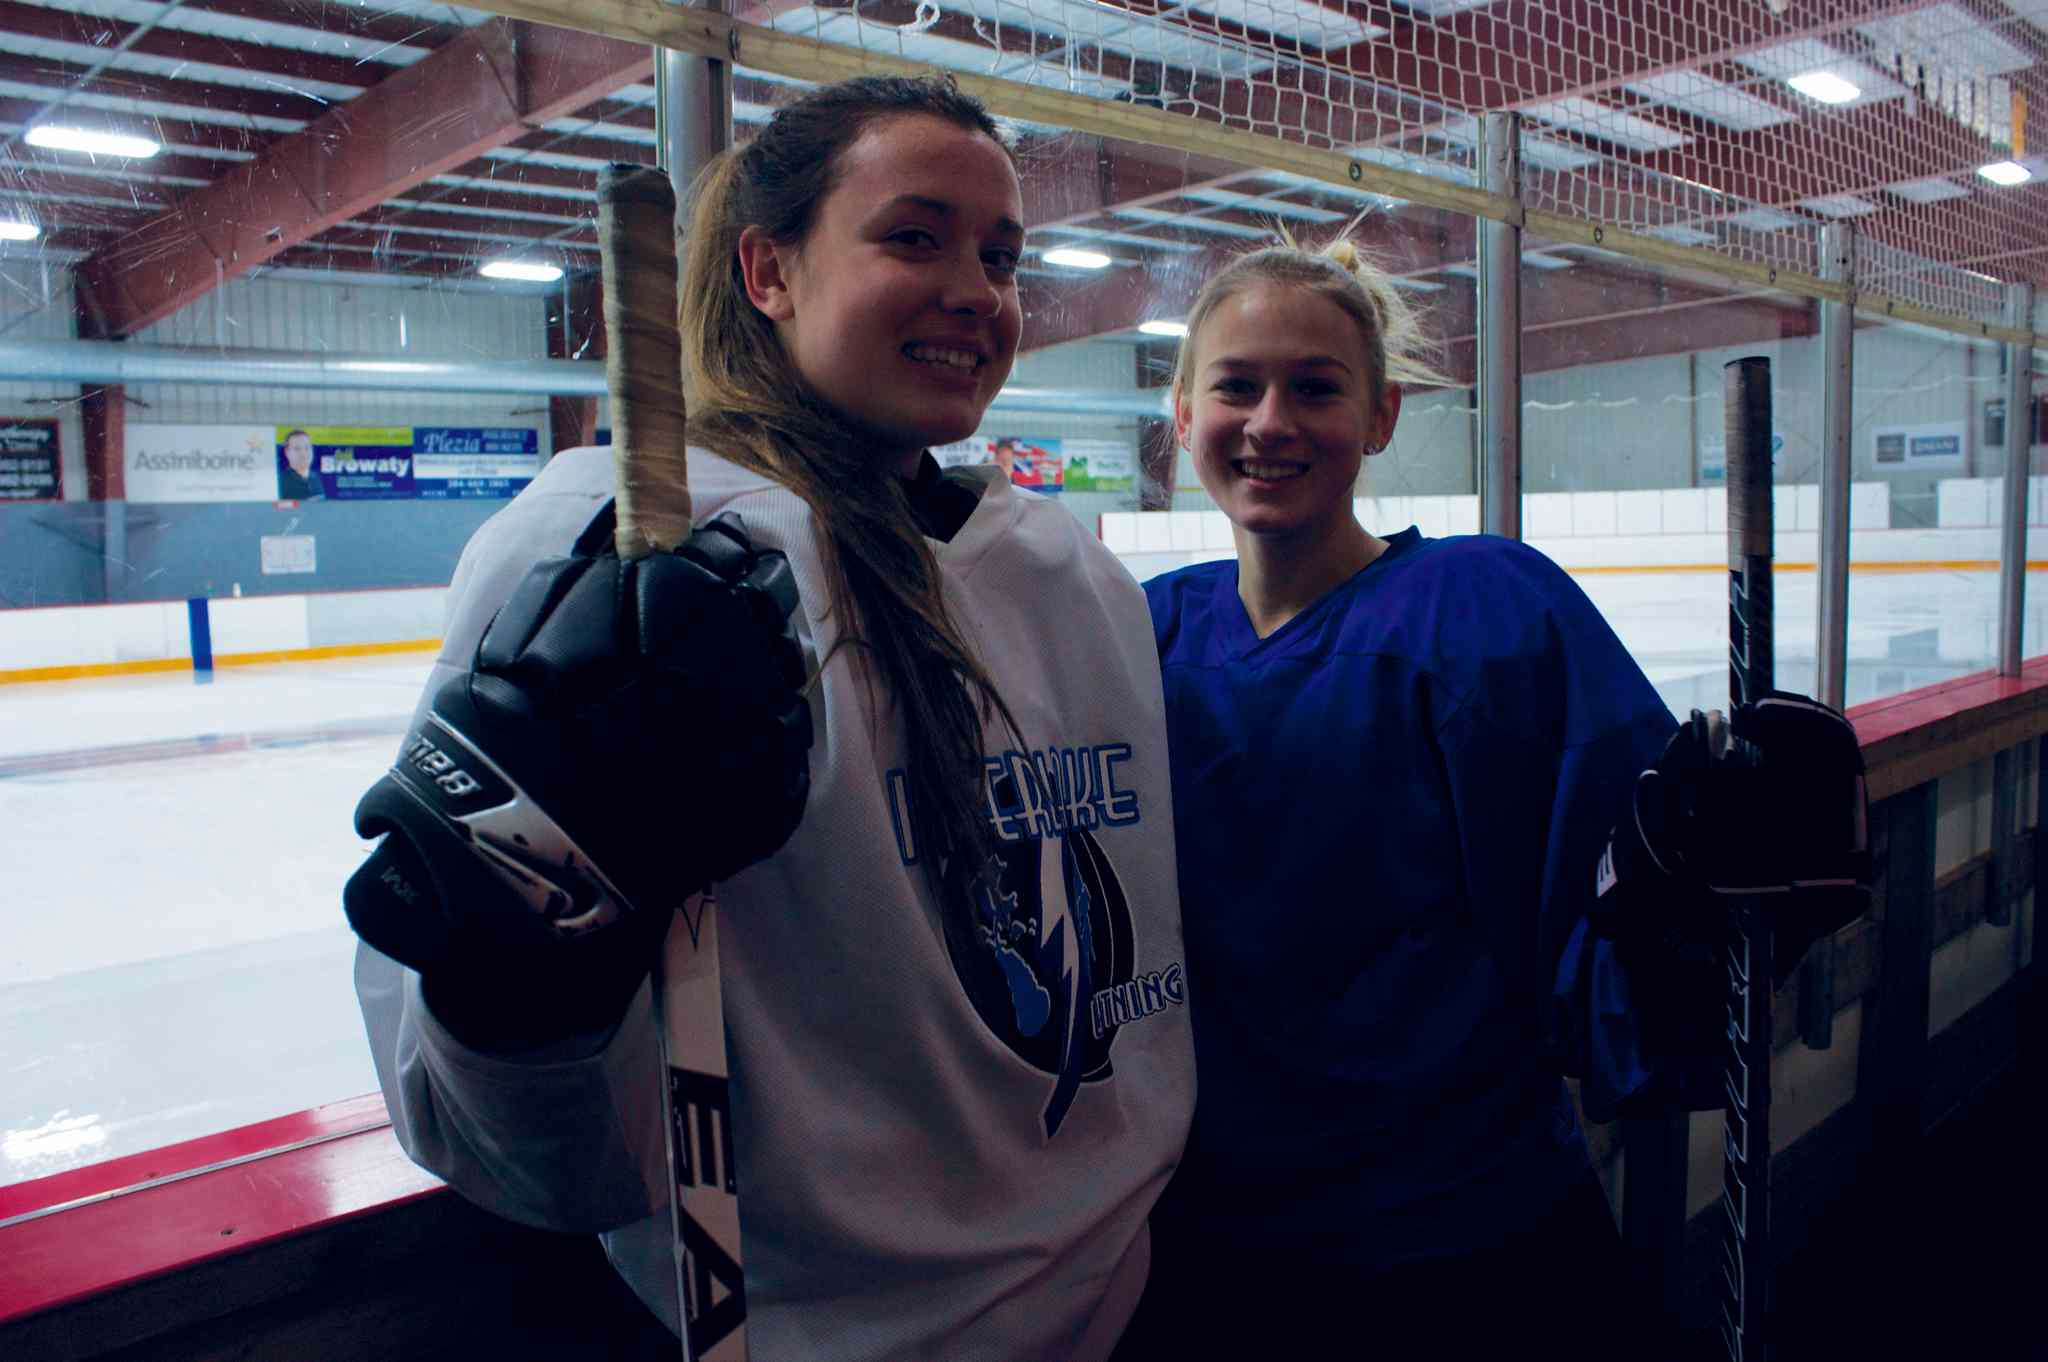 River East Kodiaks players Cassandra Szczepanski and Brittany Poirier are ready to lead the team to face a higher level of competition.